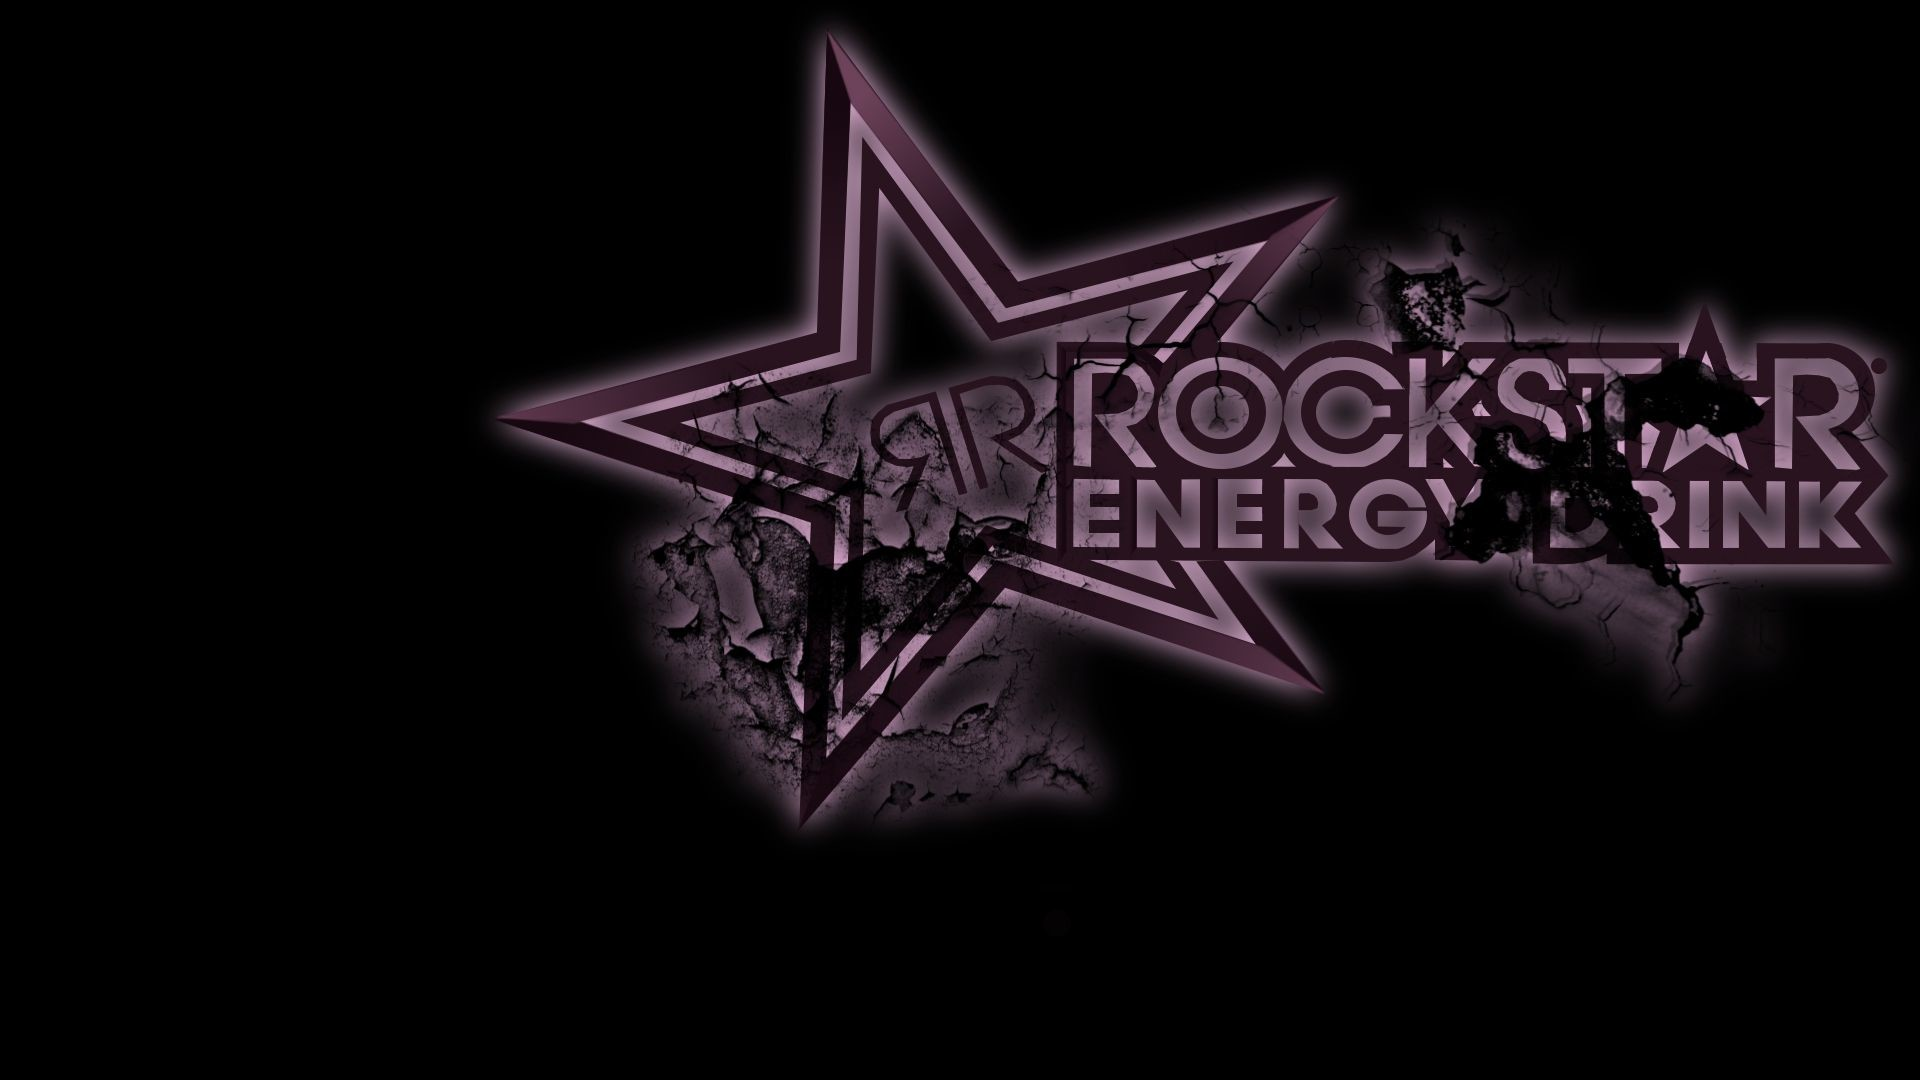 1920x1080 Rockstar Wallpaper Wallpapers) – Wallpapers and Backgrounds